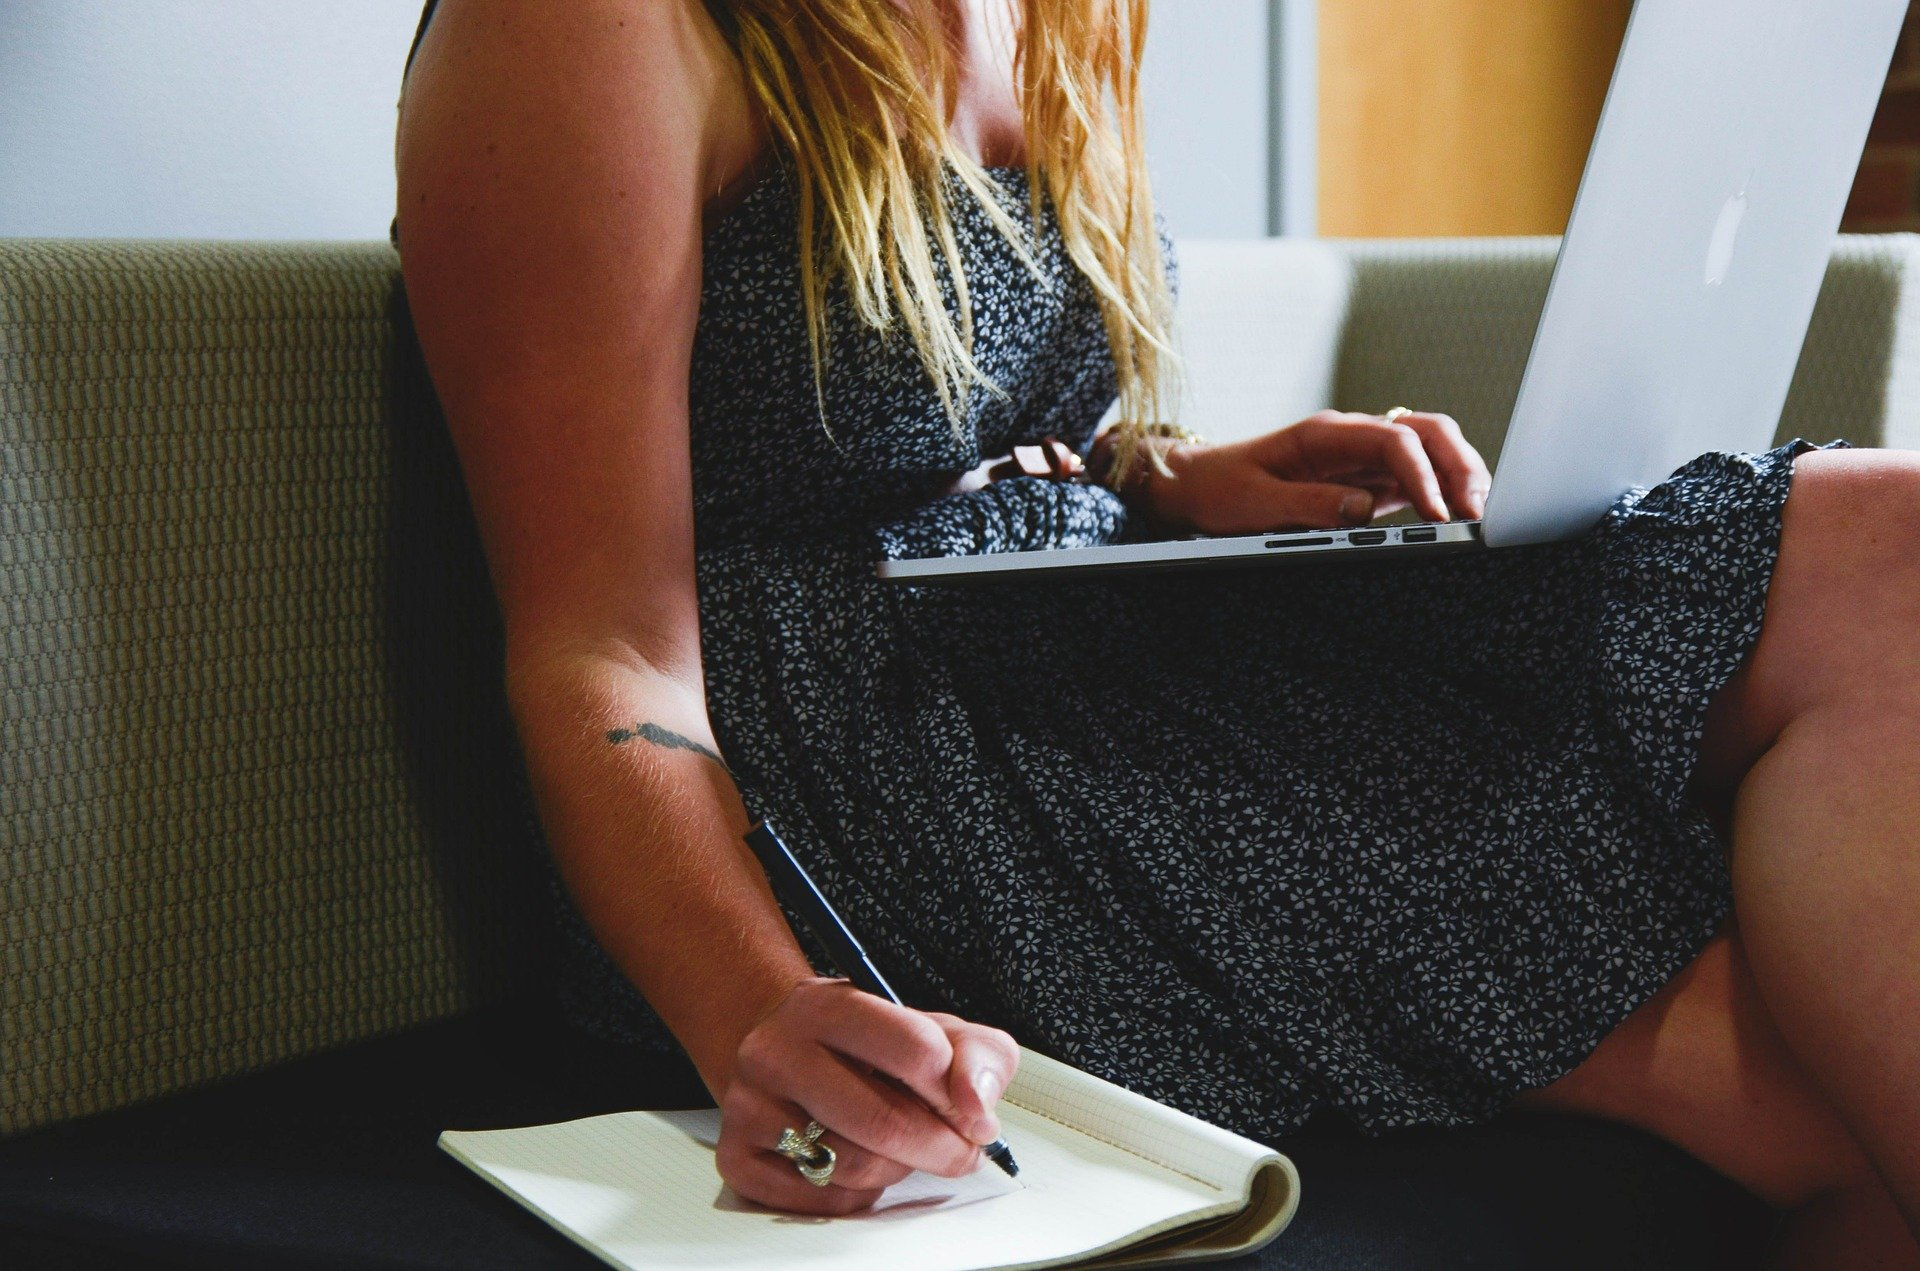 Reddit: What Essay Writing Service Has the Best Reputation?